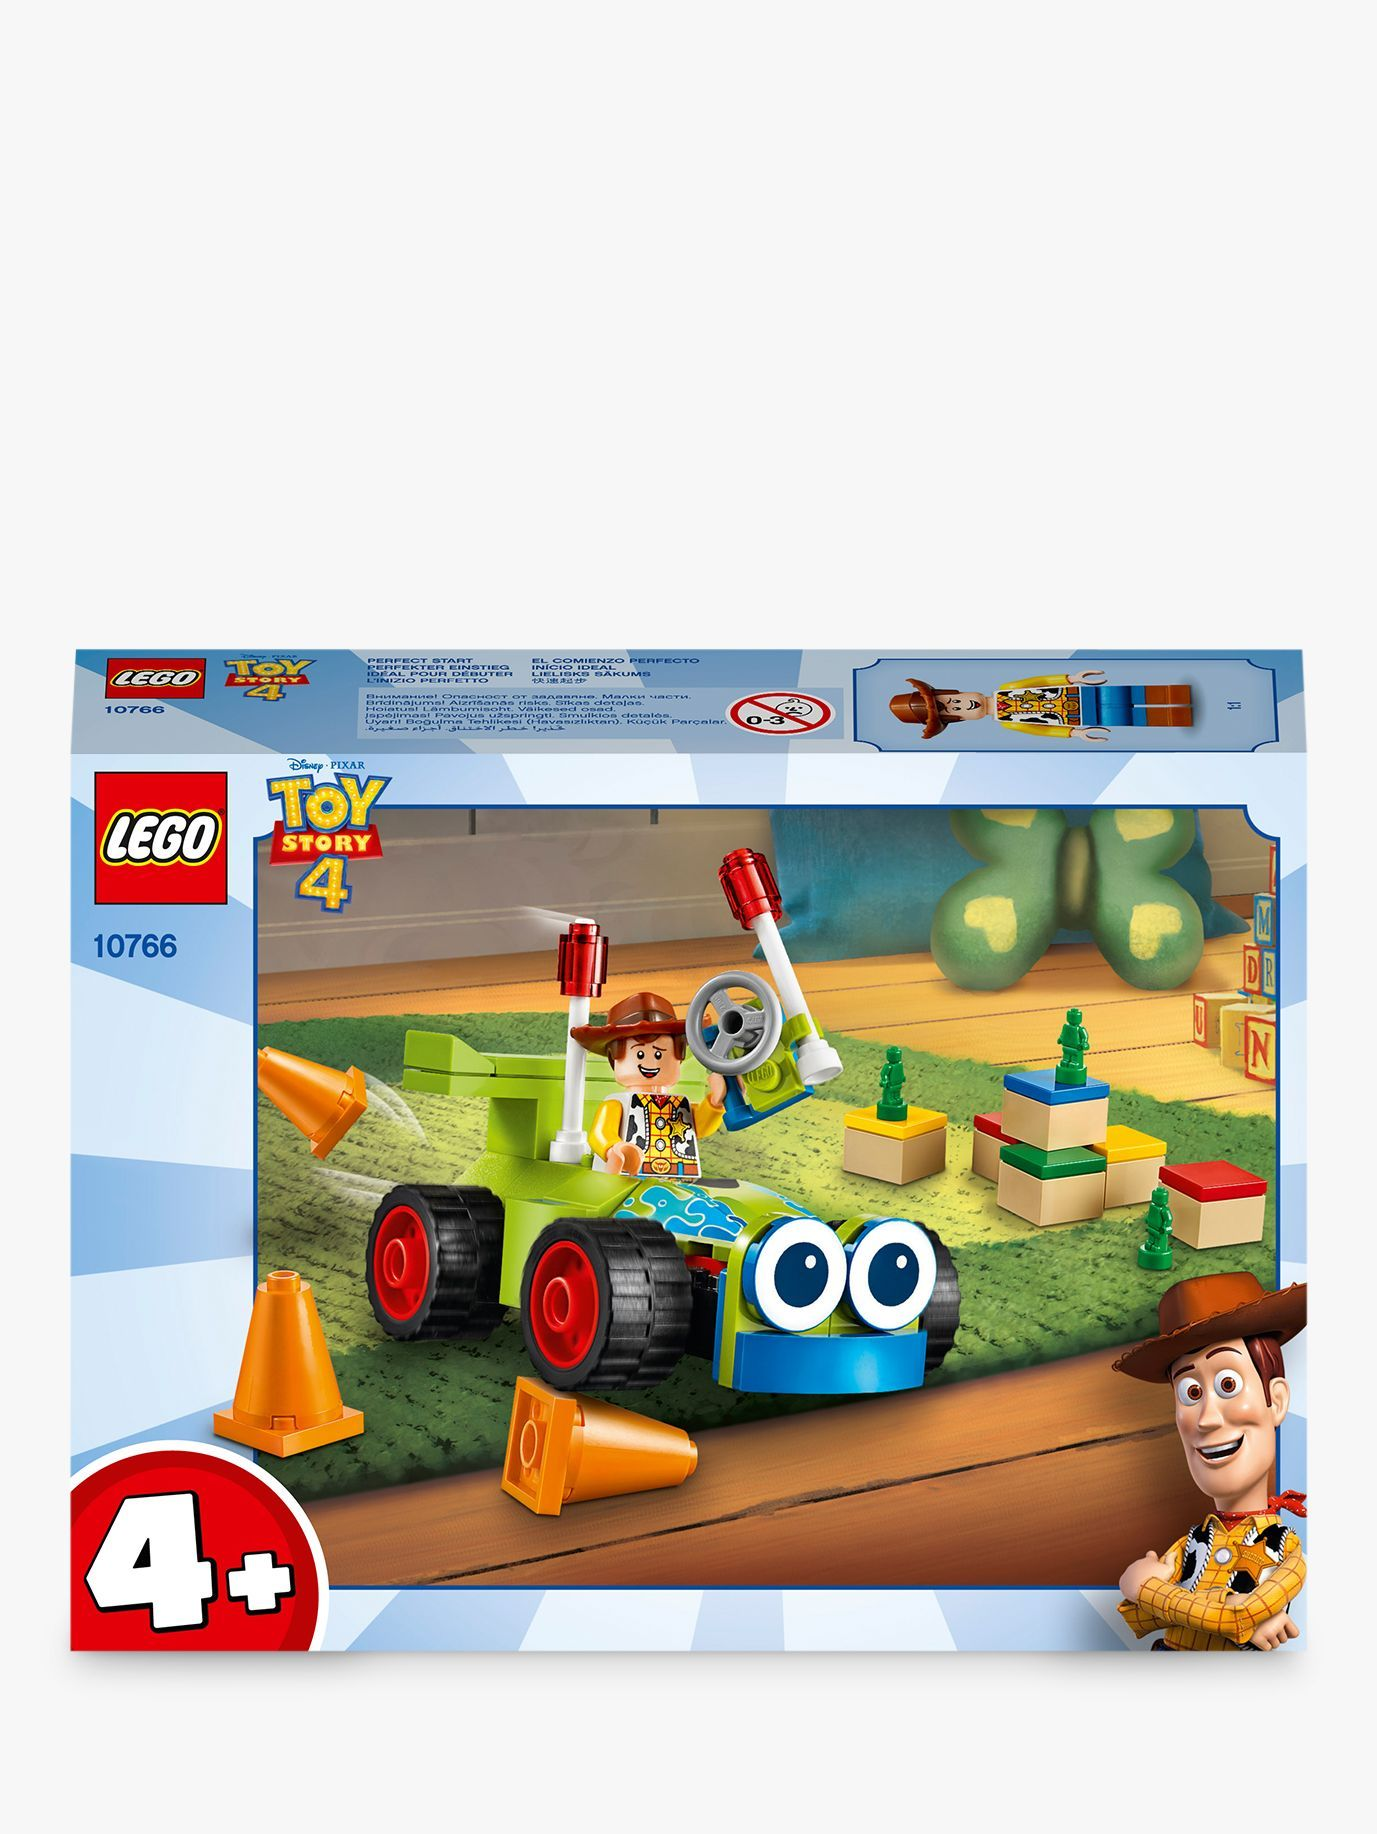 Toy Story 4 Woody /& RC Set with Minifigure LEGO 10766 4